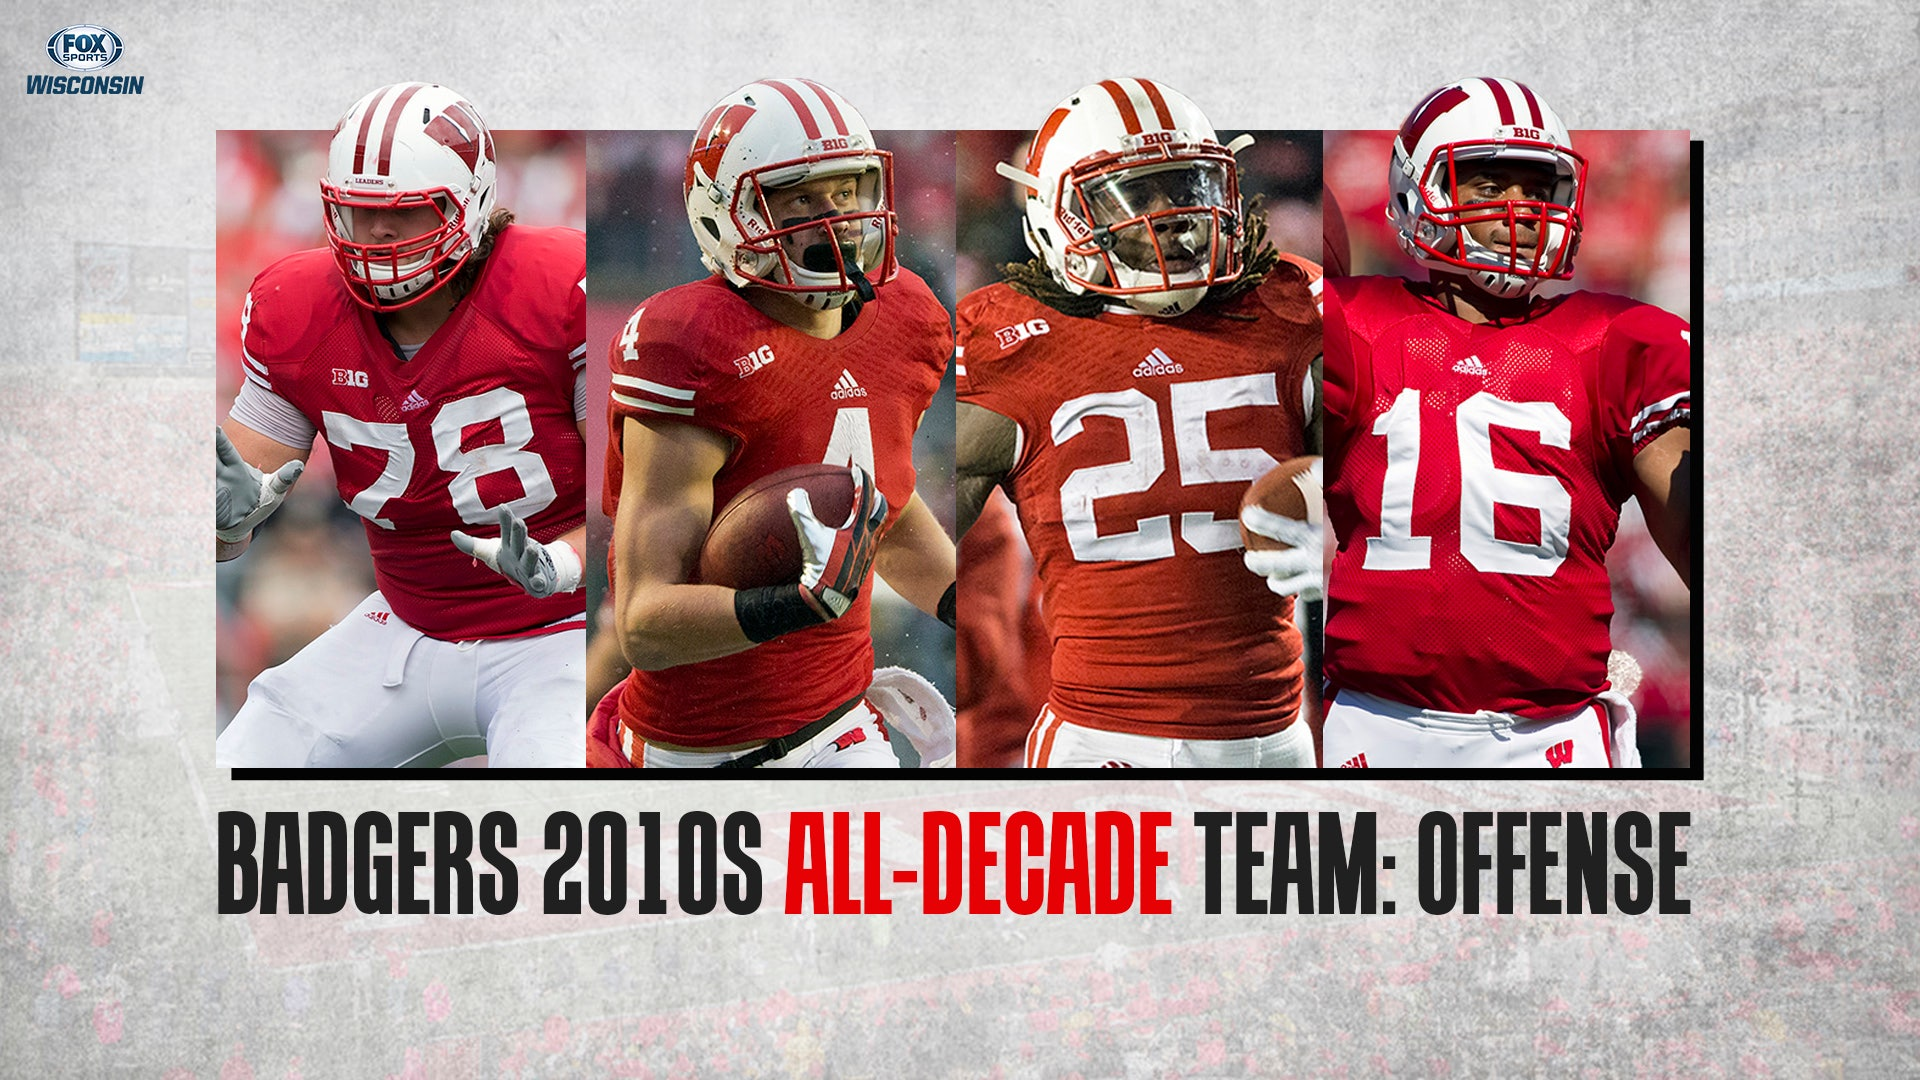 Wisconsin Badgers 2010s all-decade team: Offense | FOX Sports